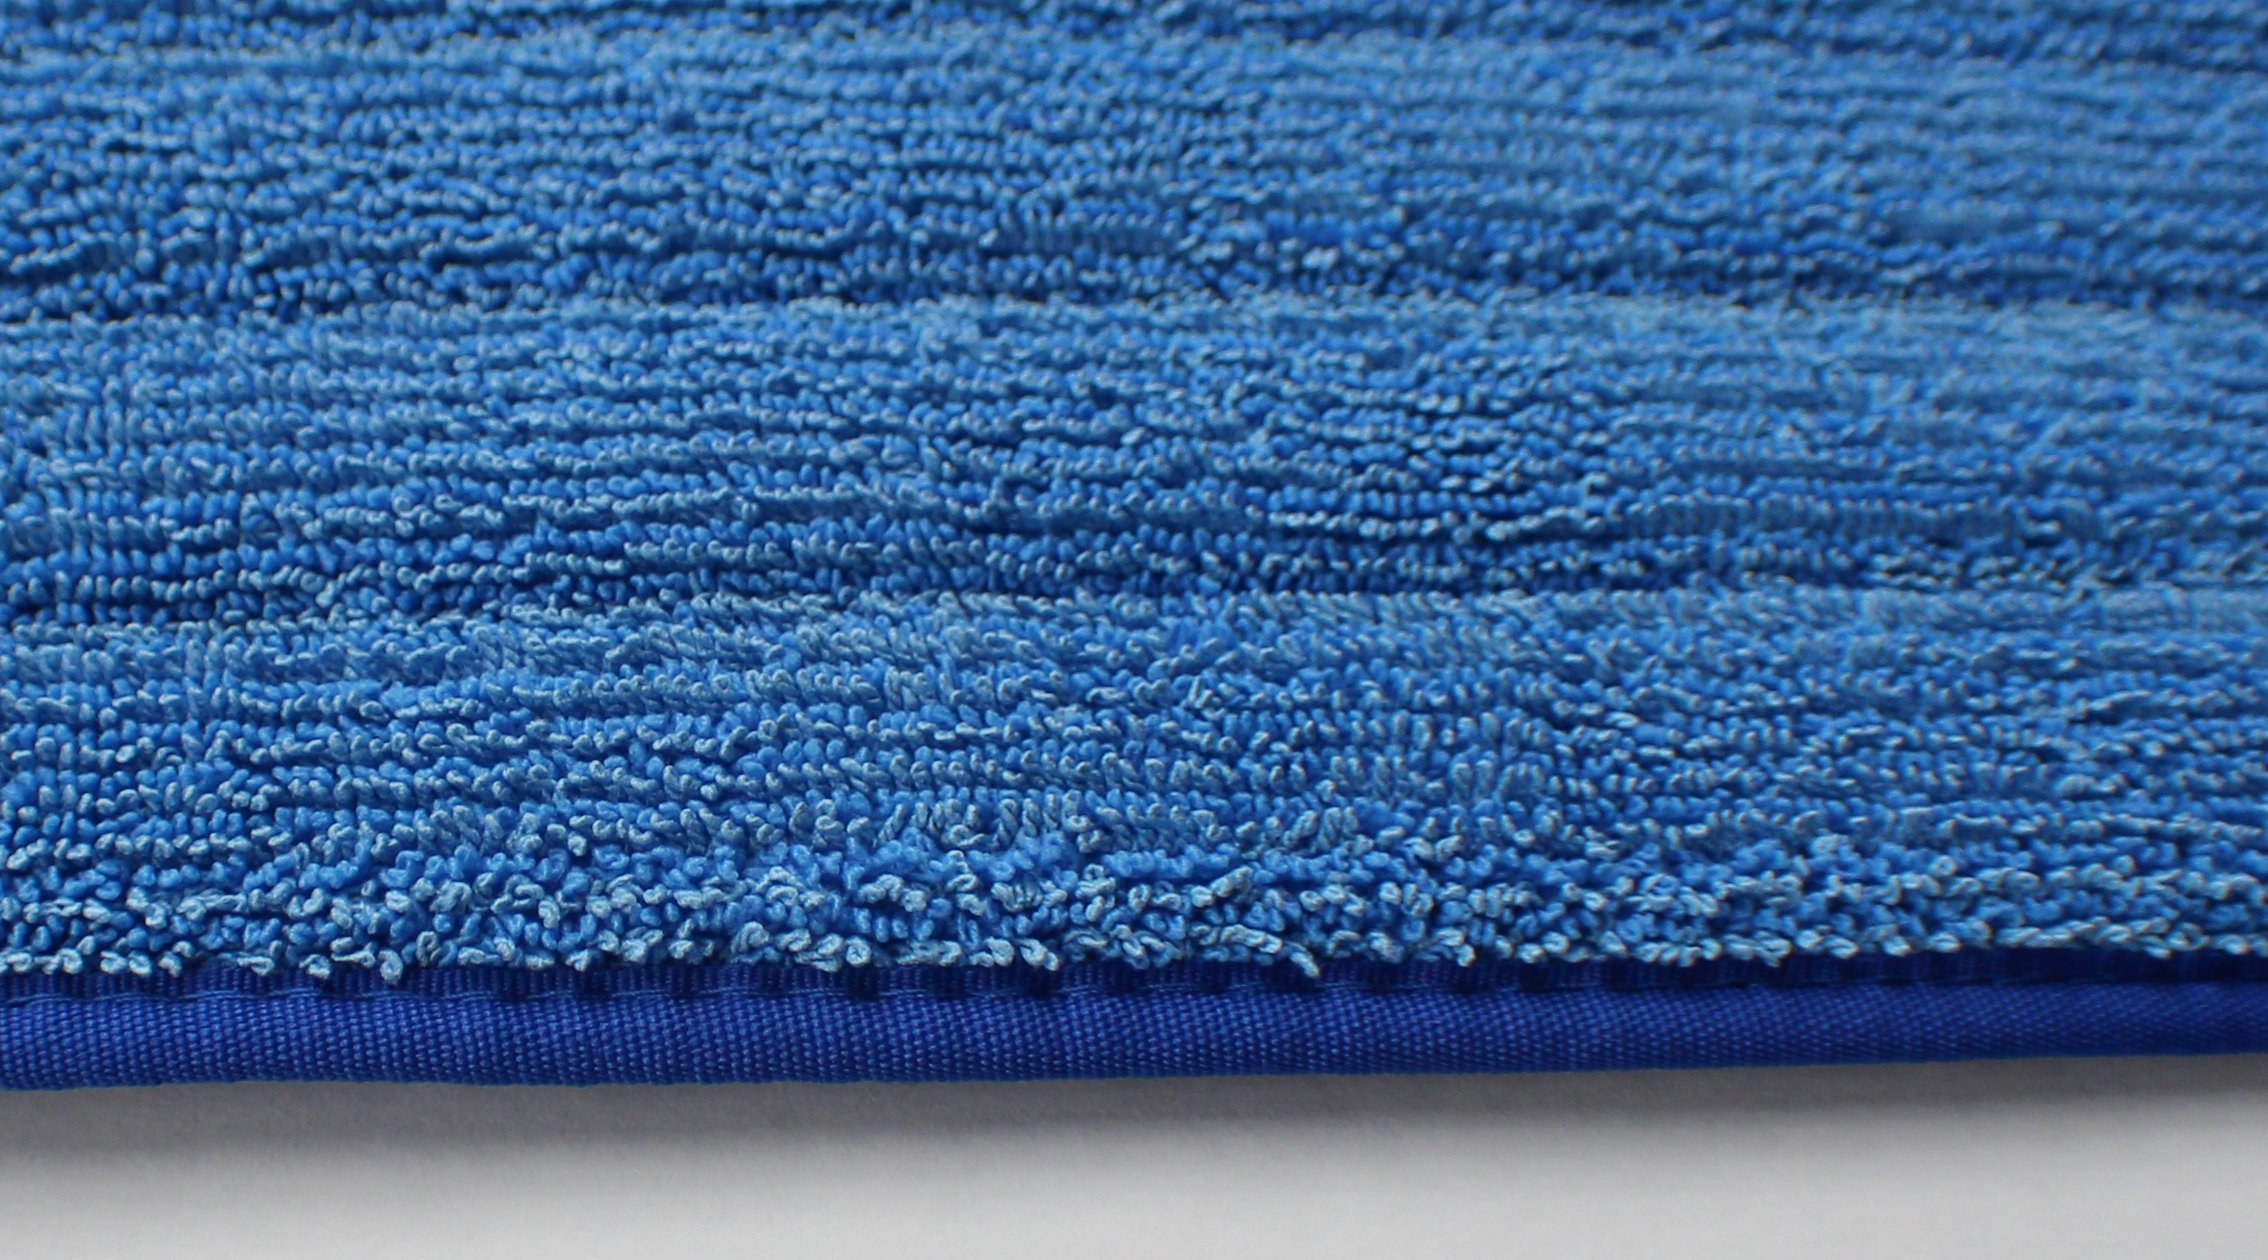 48'' Microfiber Mop Pads - Velcro, Launderable, Wet/Dry : 12 Pack by Direct Mop Sales (Image #3)